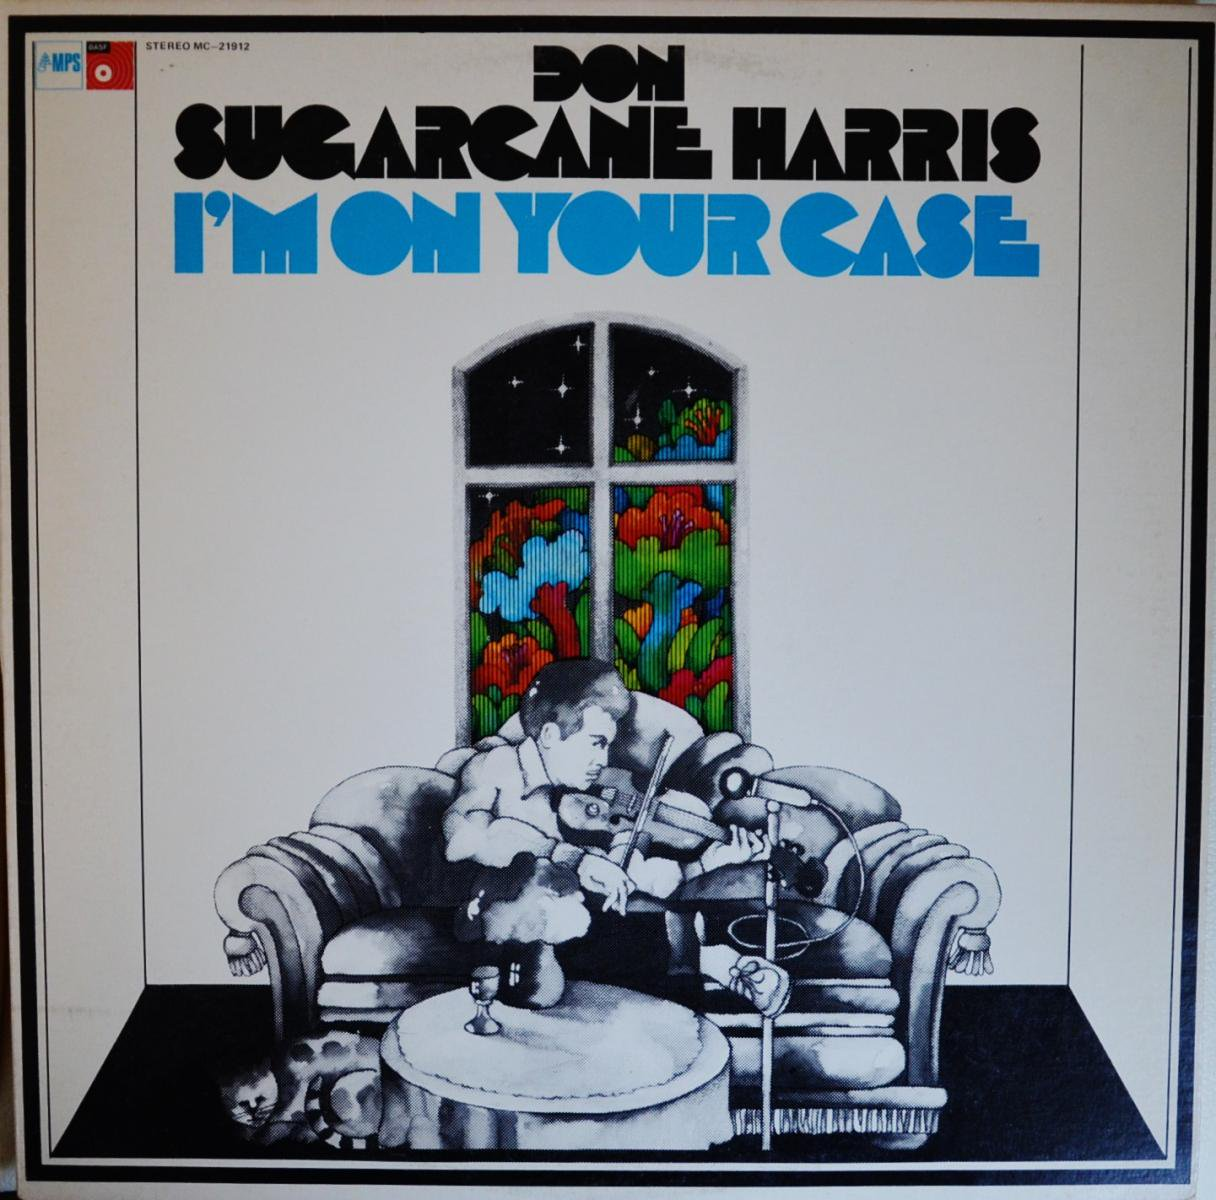 DON SUGARCANE HARRIS / I'M ON YOUR CASE (LP)